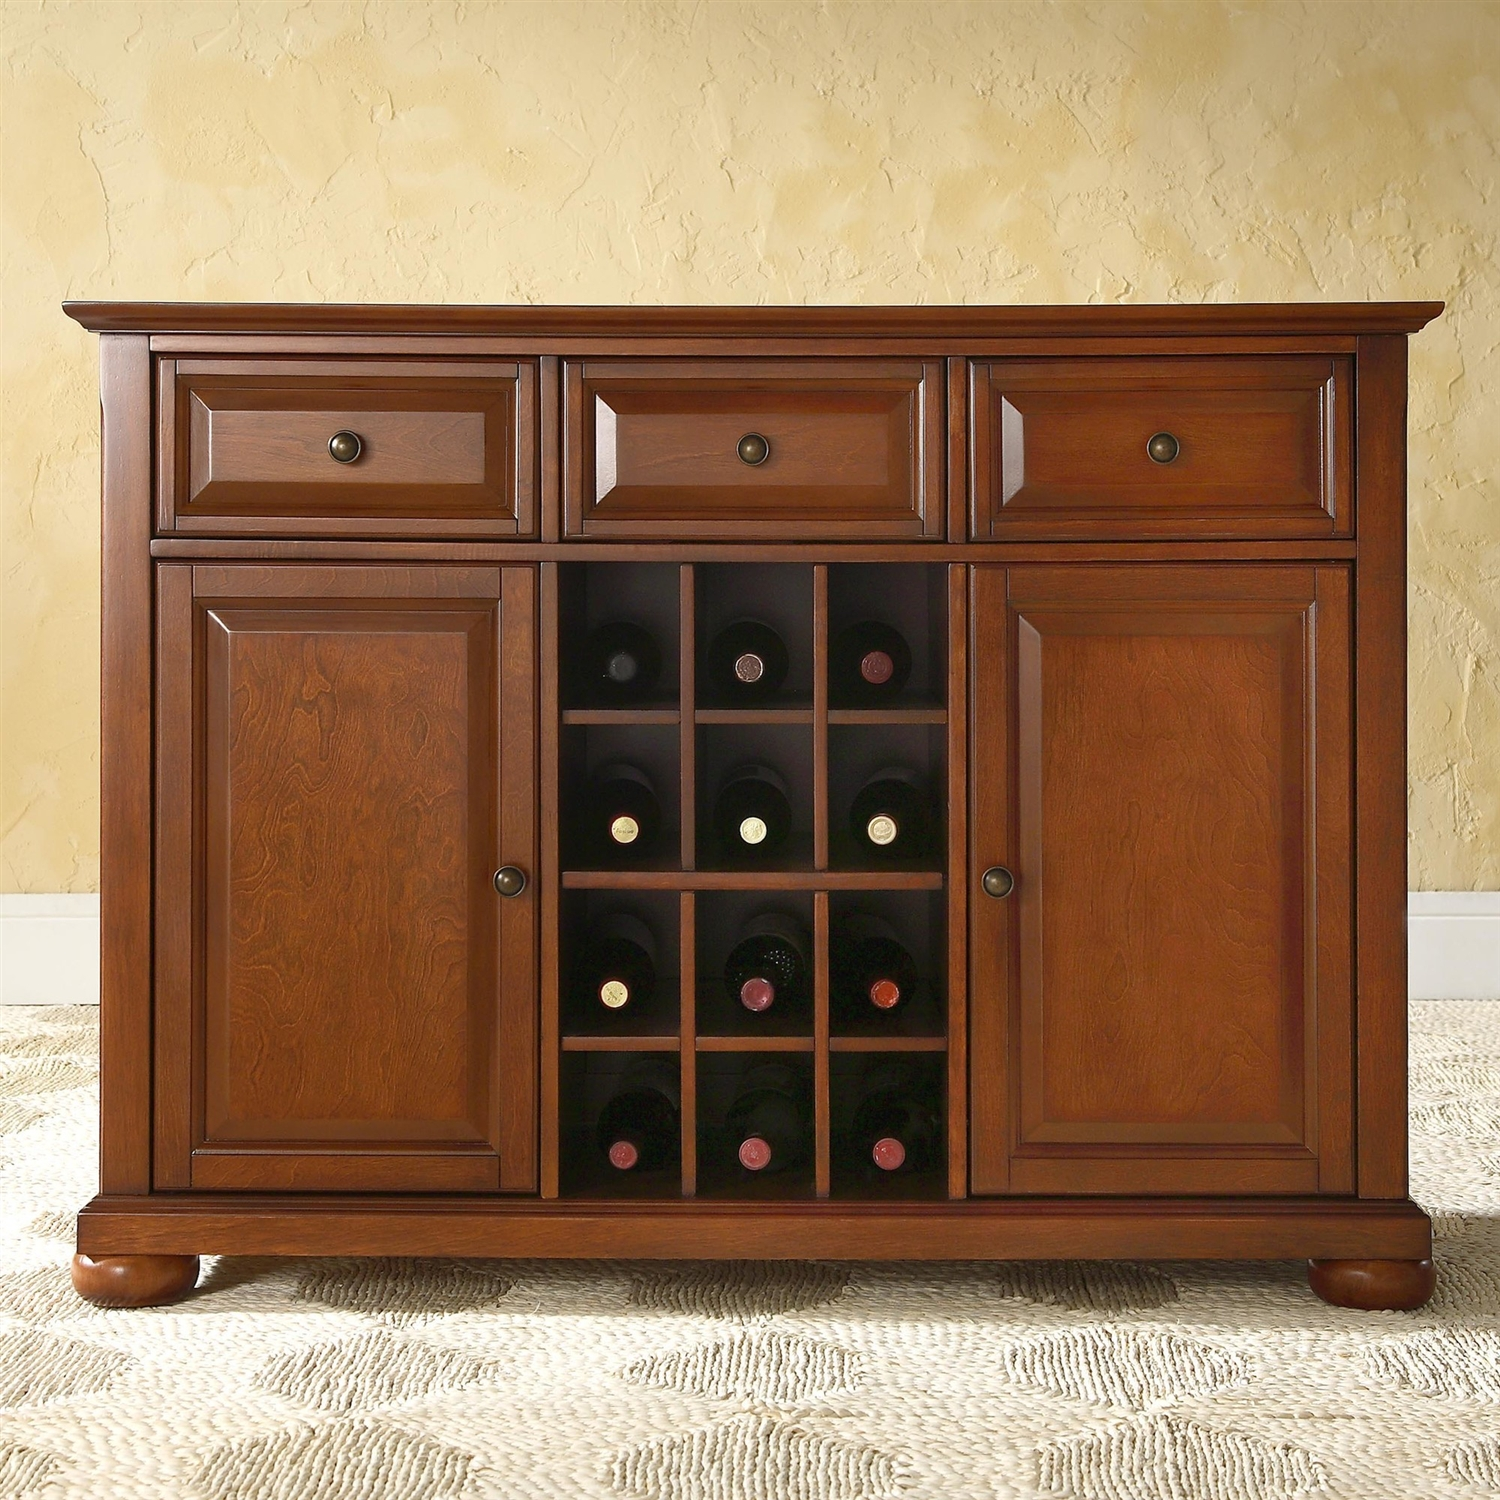 Moveable Solid Wood Ceramic Buffet Kitchen Sink Cabinet: SIDEBOARDS & BUFFETS